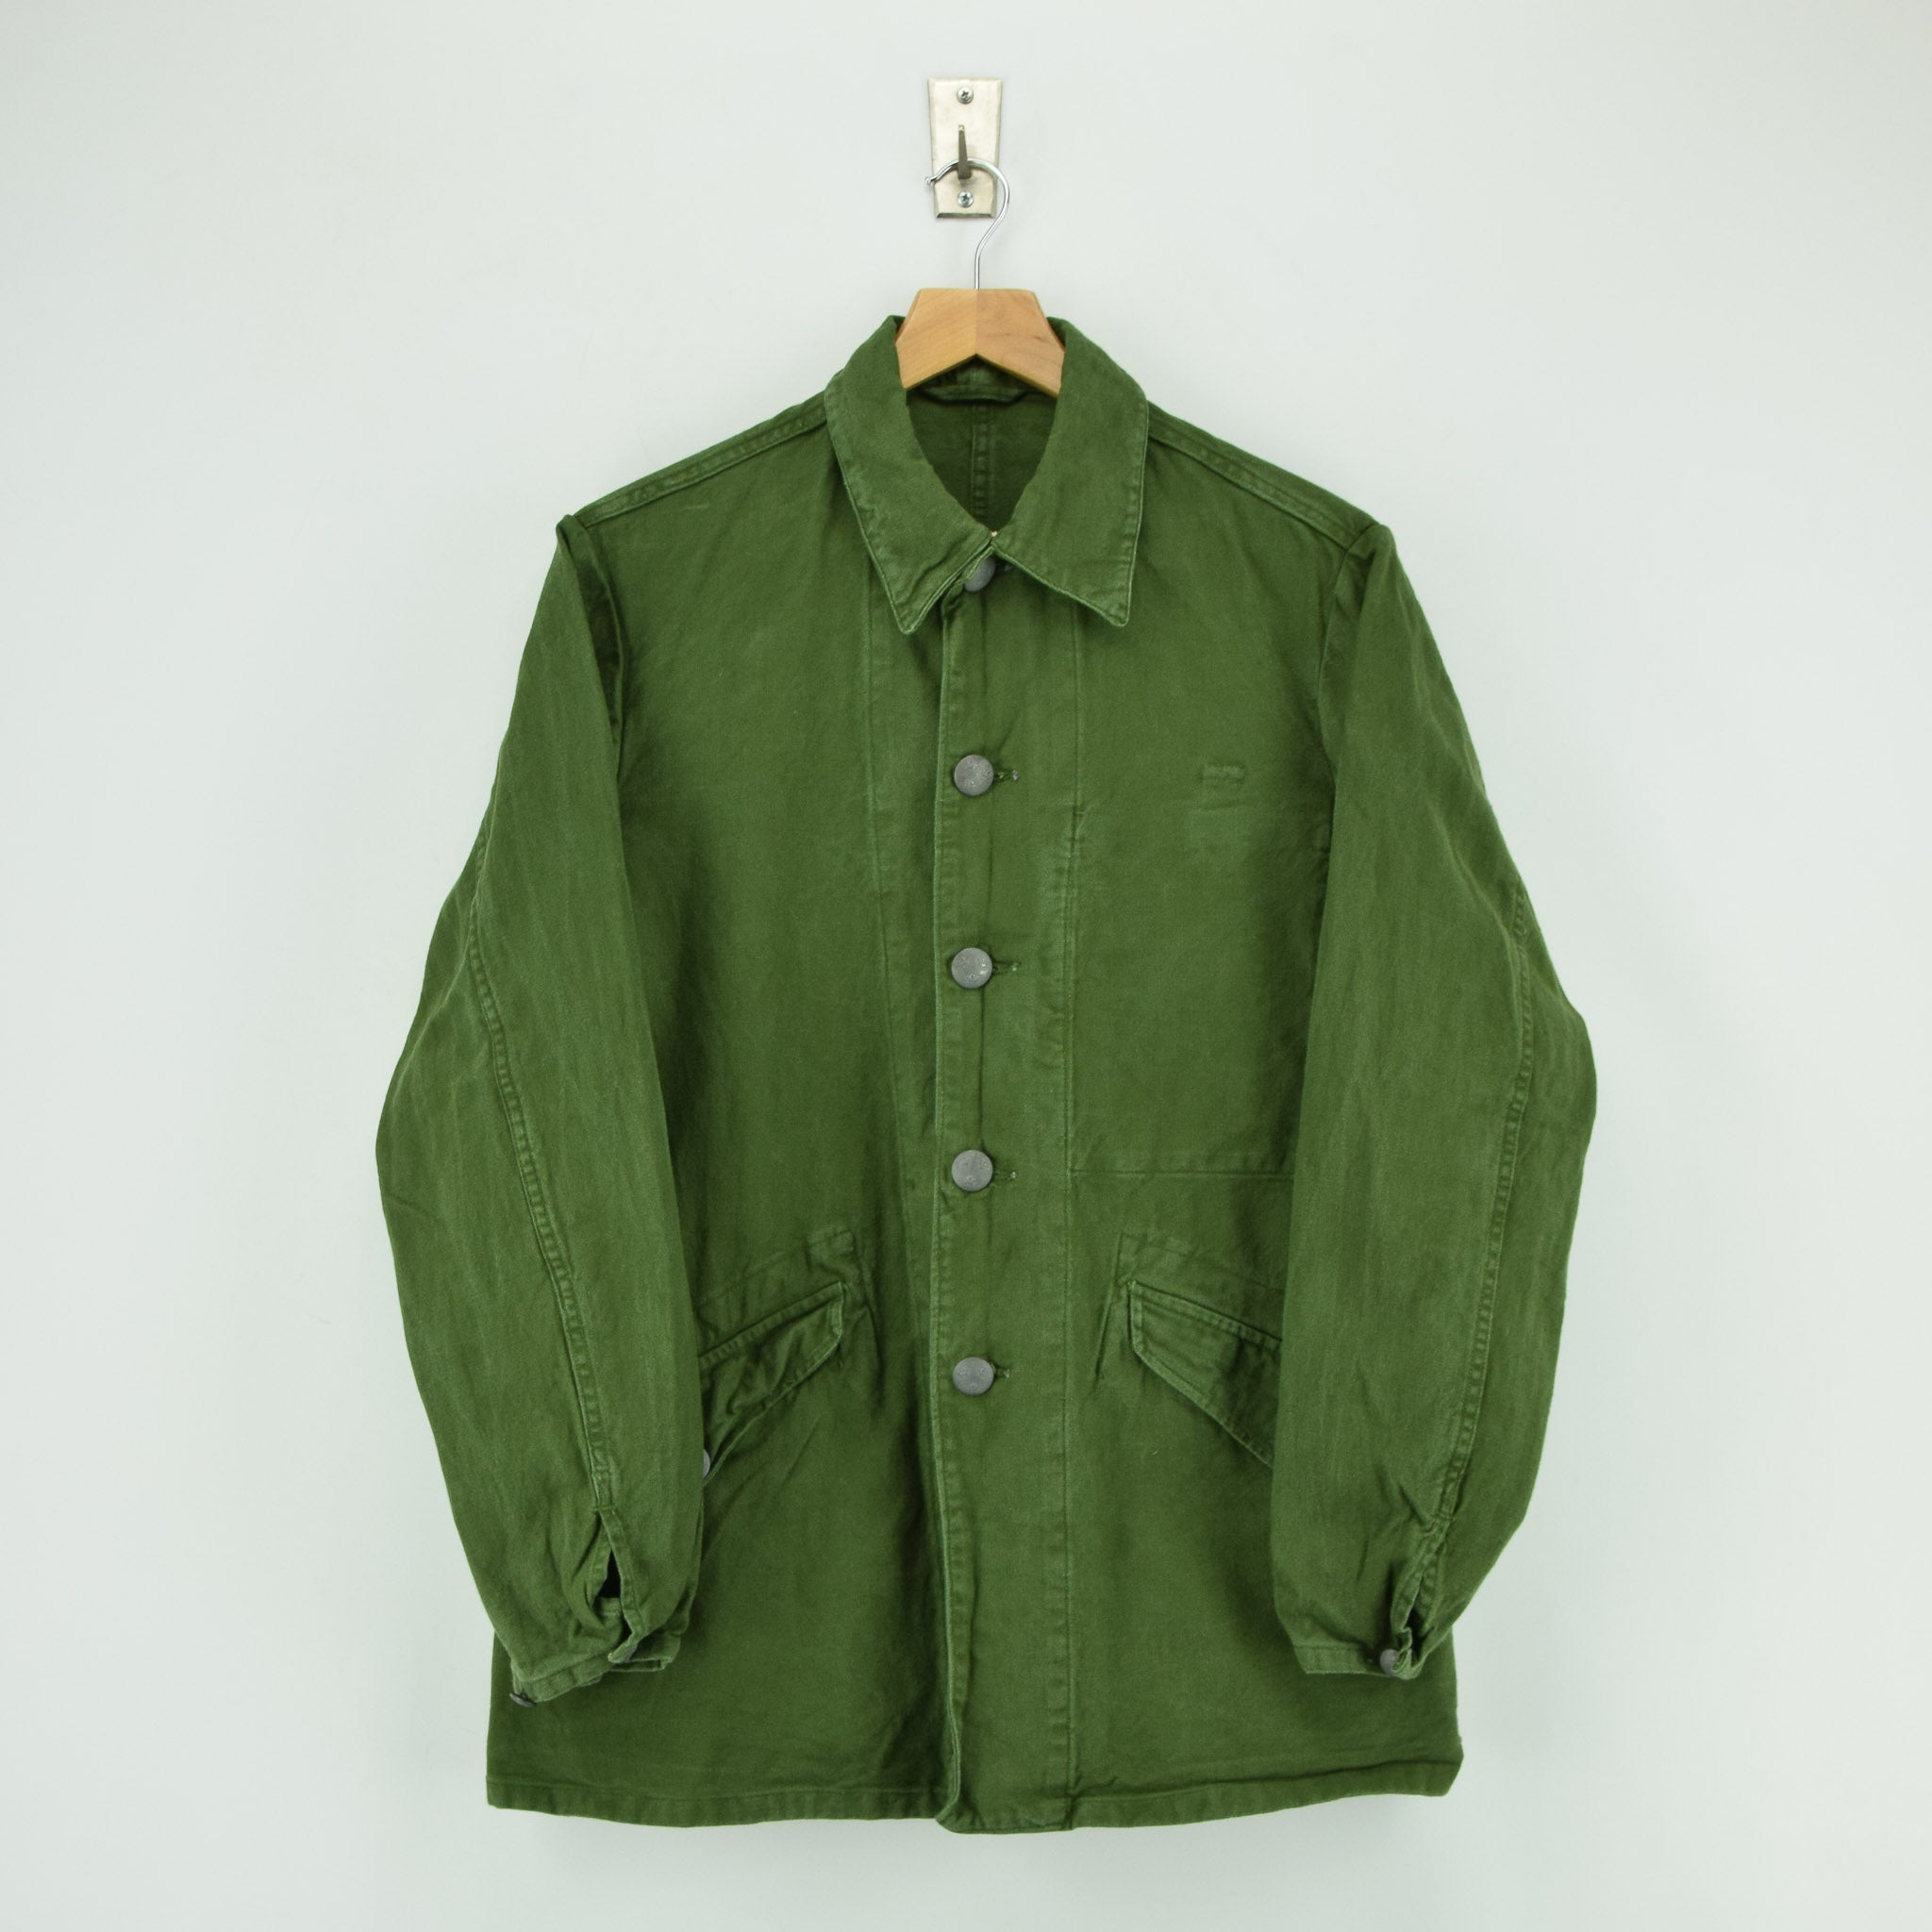 Vintage 60s Swedish Military Field Jacket Worker Style Distressed Green S front